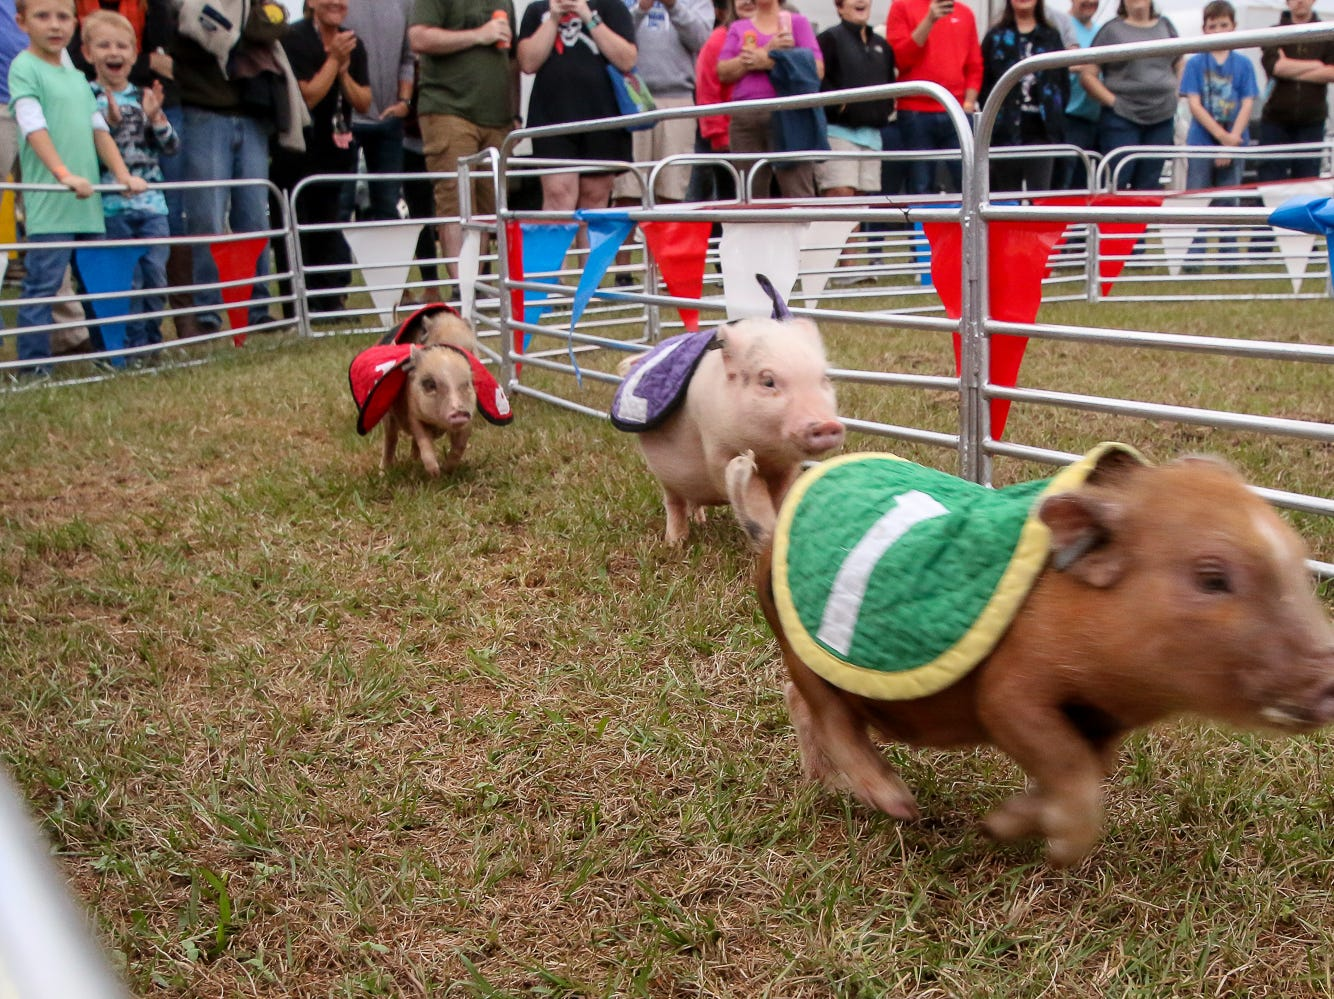 Little pigs sprint to the finish line for an Oreo cookie prize in the Swifty Swine pig races during the 84th annual Pensacola Interstate Fair on Monday, October 22, 2018.